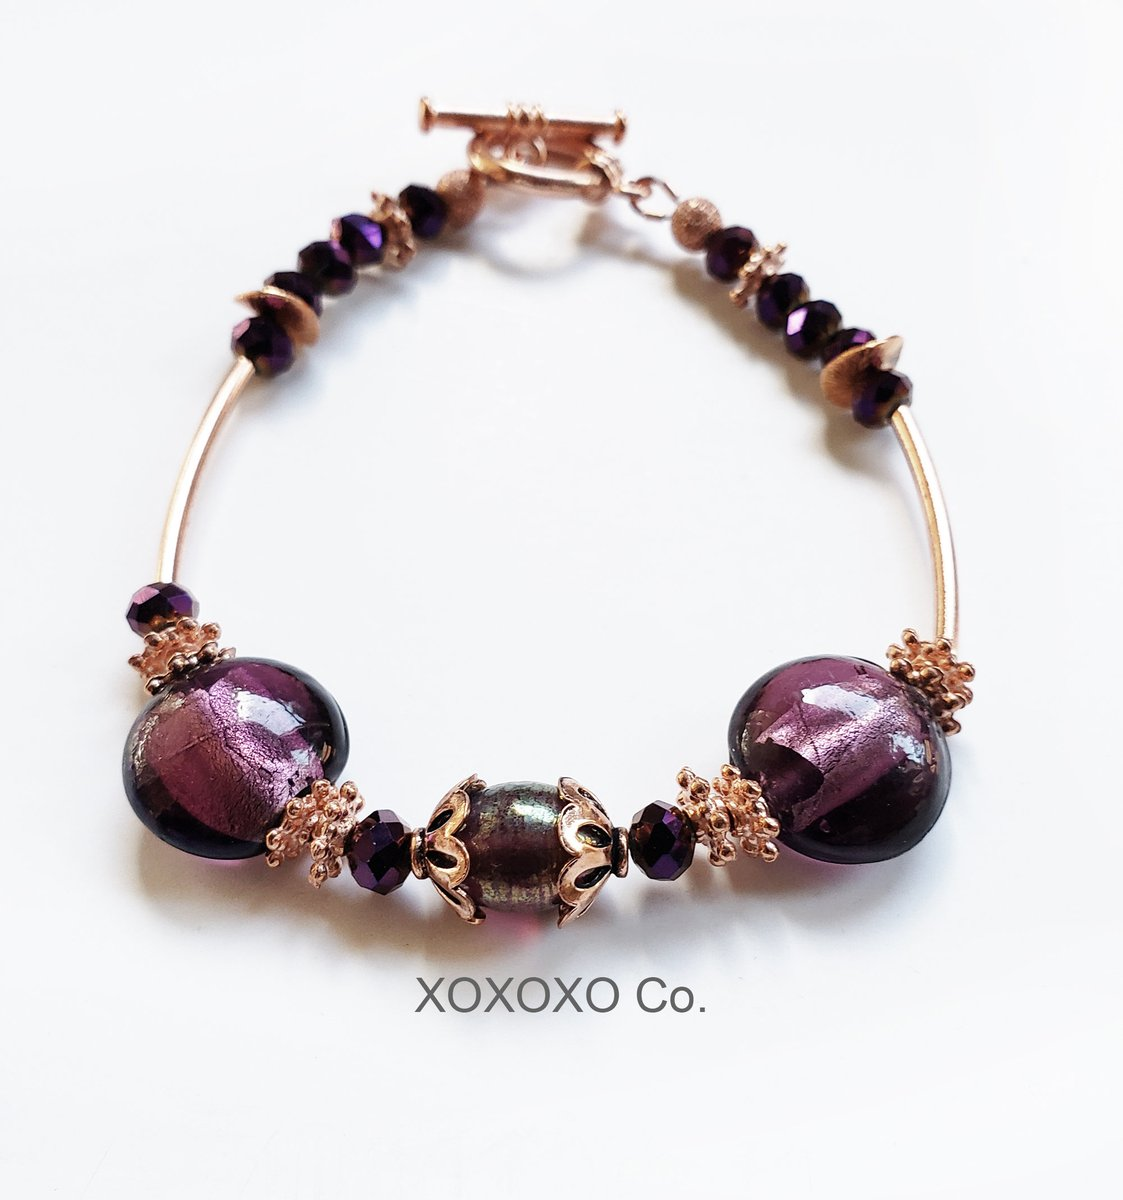 Copper Bracelet with Purple Beads and Purple Murano Foil Lined Beads Copper Toggle Clasp  #handmade #christmasgifts #giftsforher #style #shopsmall #Etsy #jewelryblogger #handmadejewelry #fashion